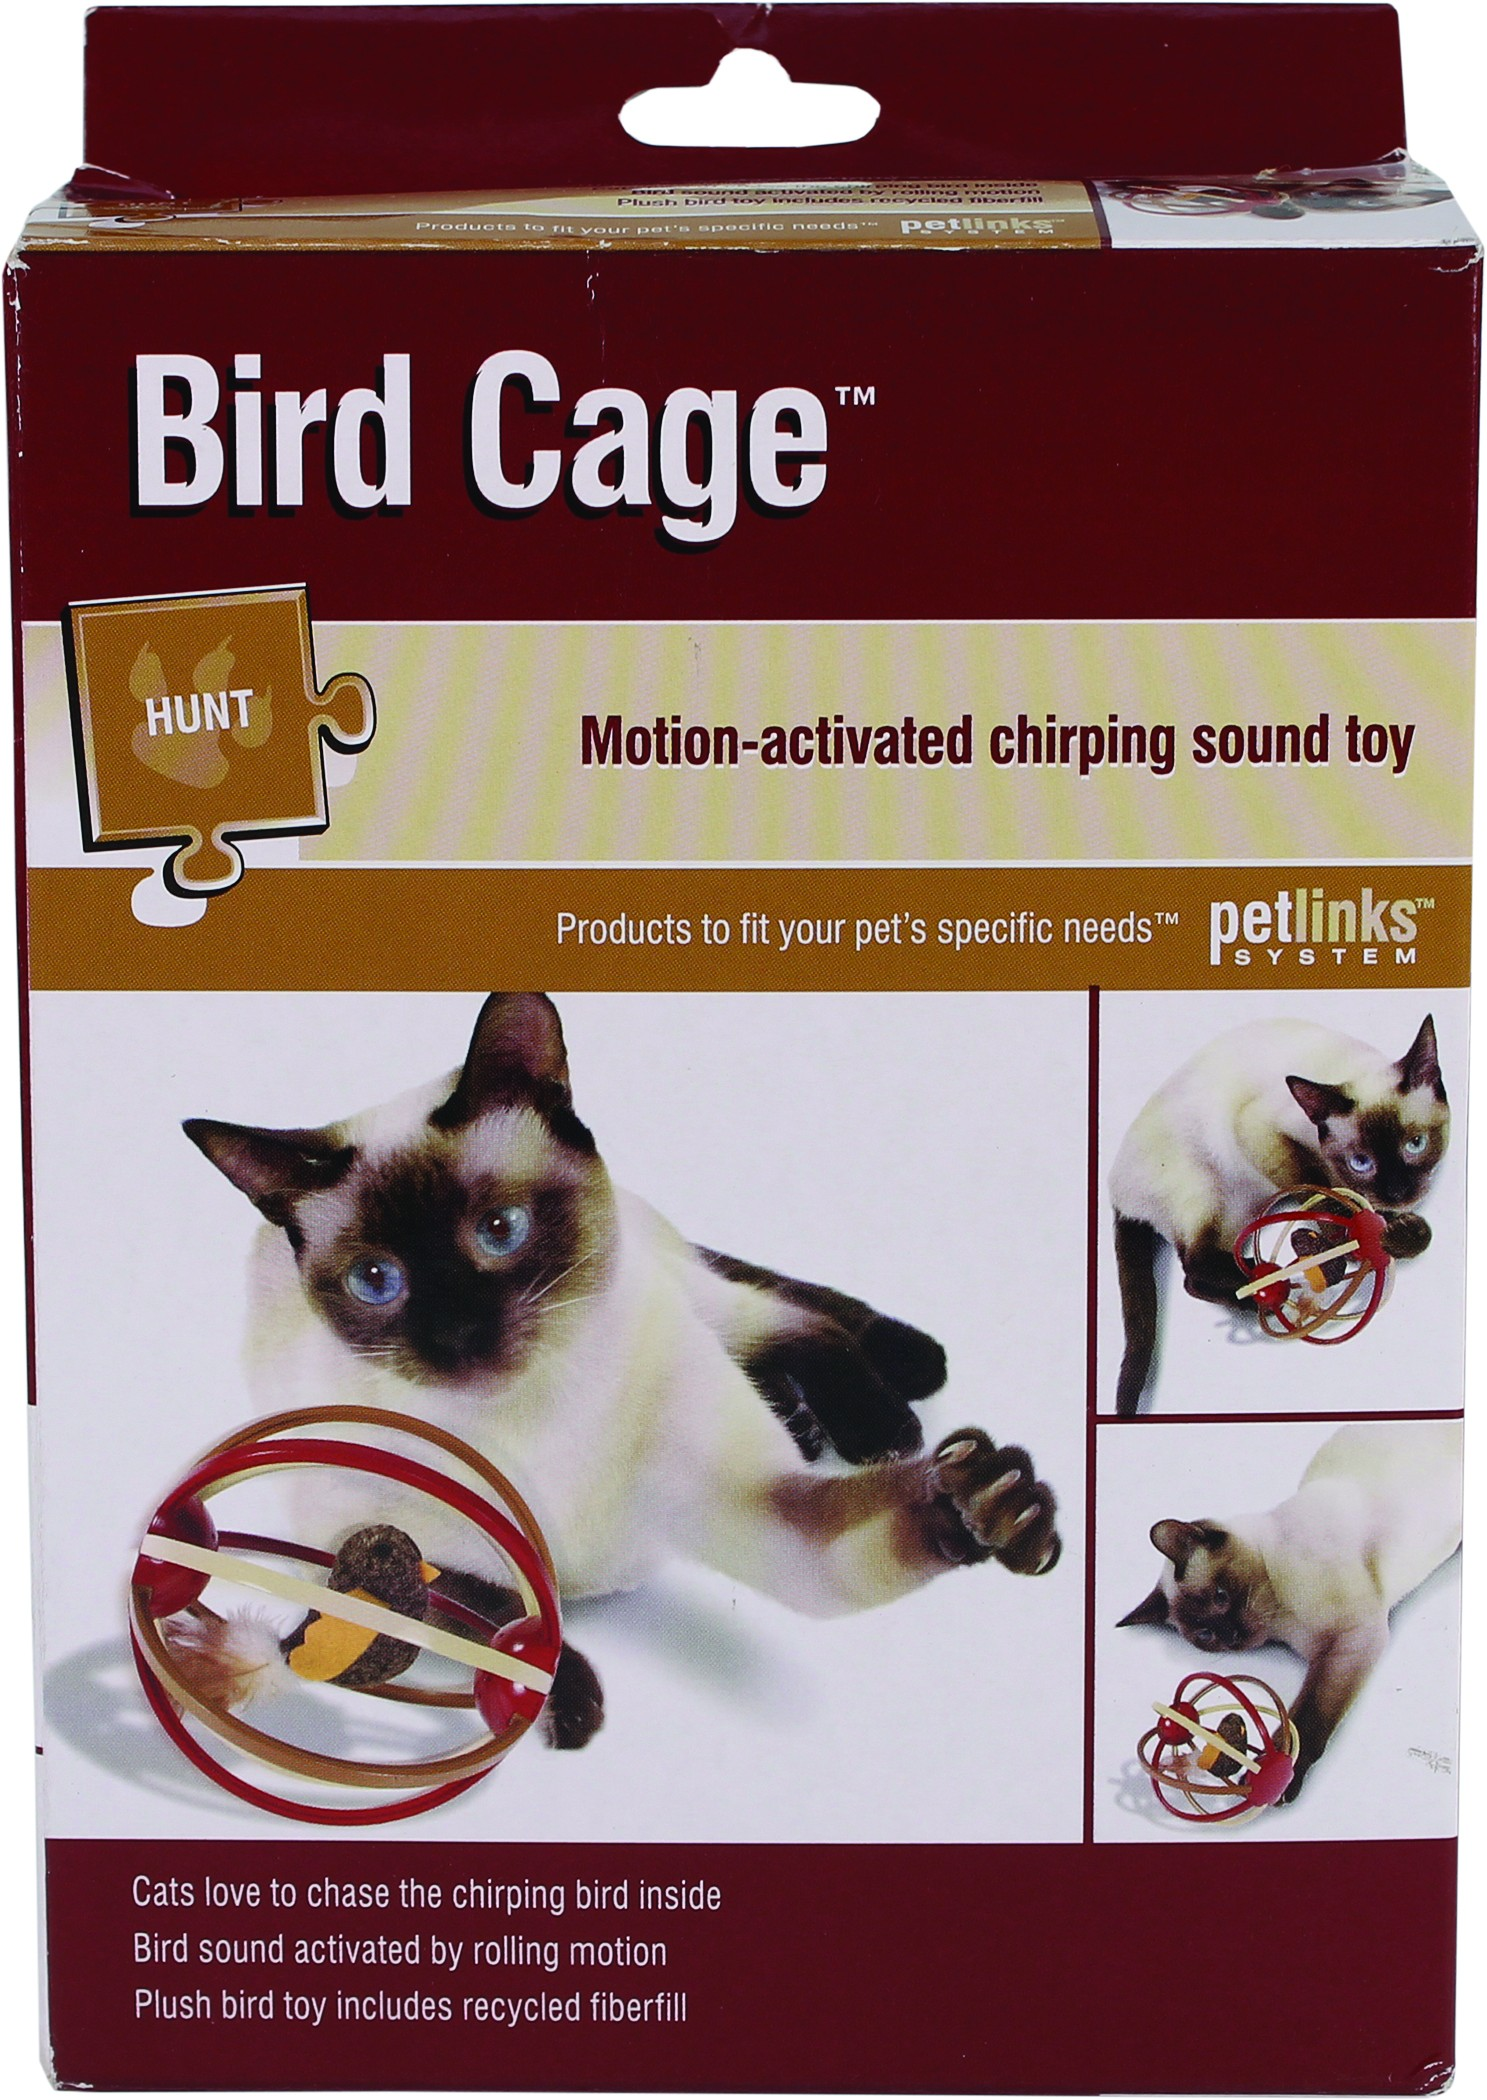 BIRD CAGE MOTION-ACTIVATED CHIRPING SOUND CAT TOY